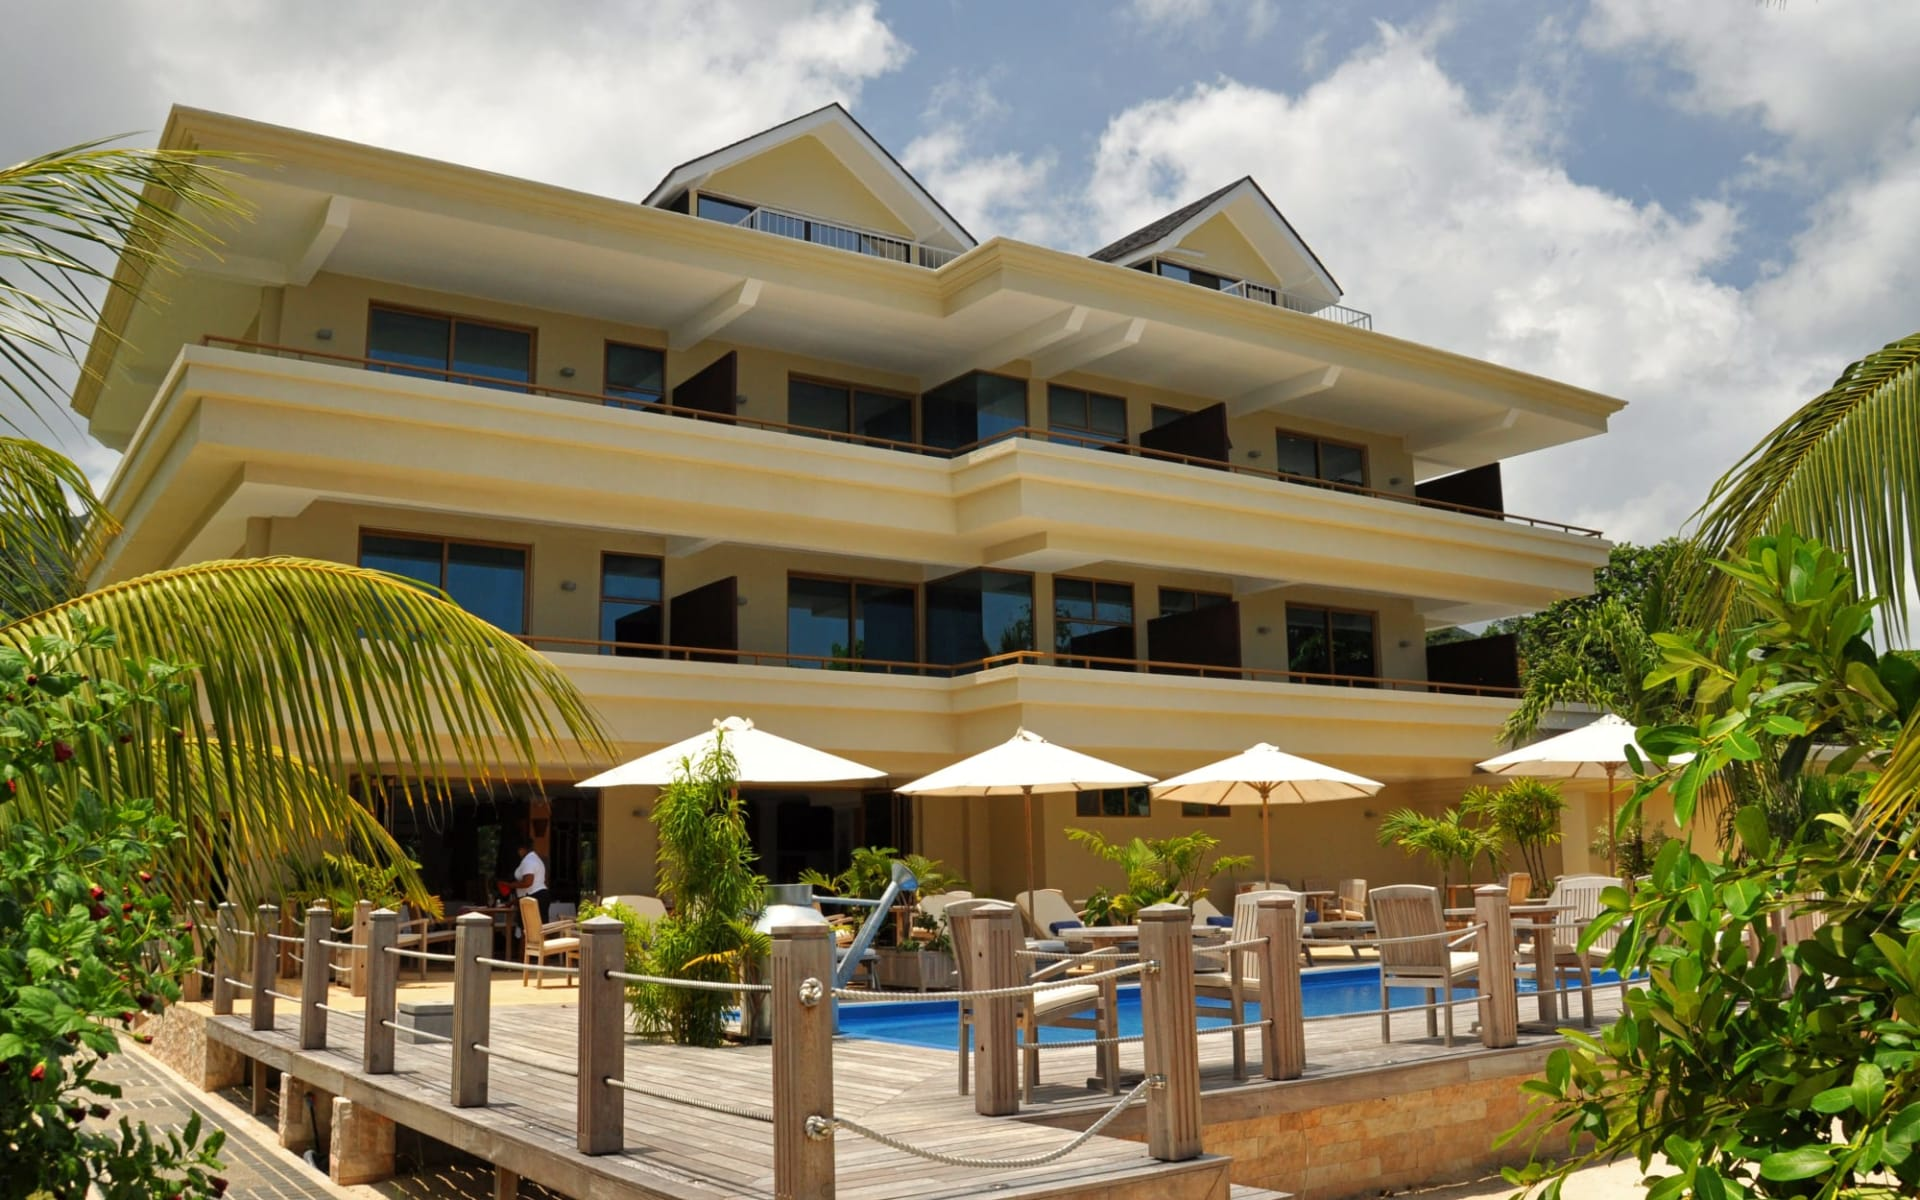 Crown Beach Hotel in Mahé:  Crown Beach